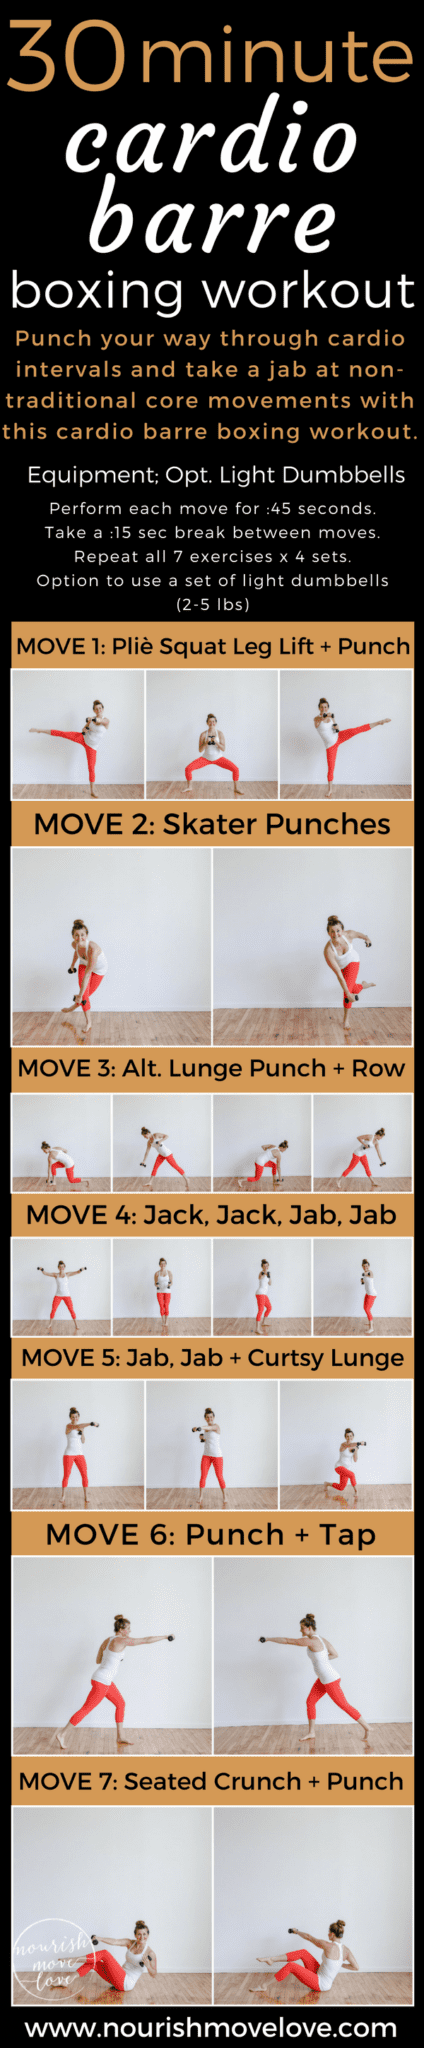 30-Minute Cardio Barre Boxing Workout | www.nourishmovelove.com